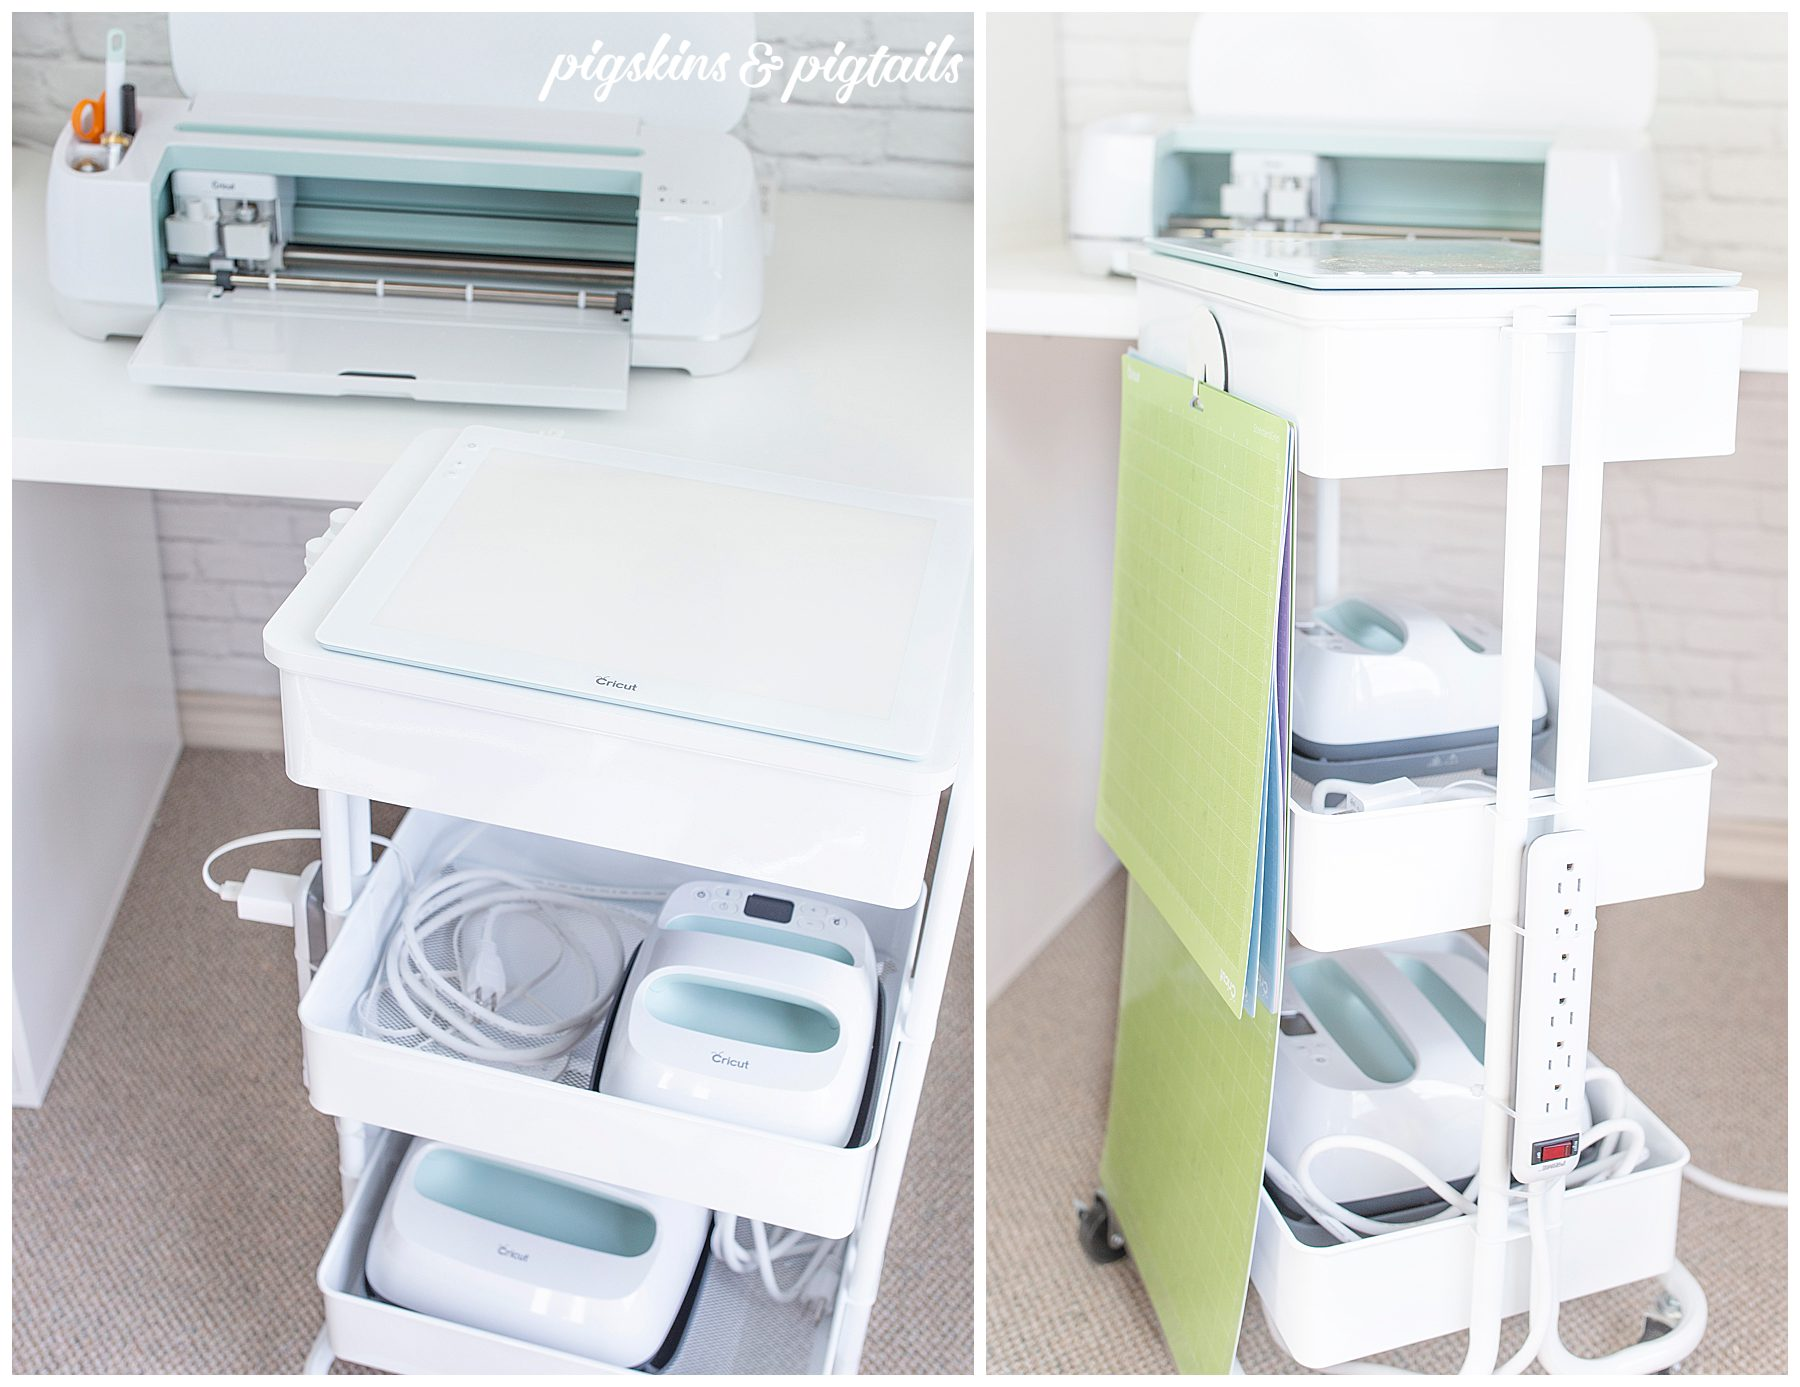 Cricut organization with rolling cart